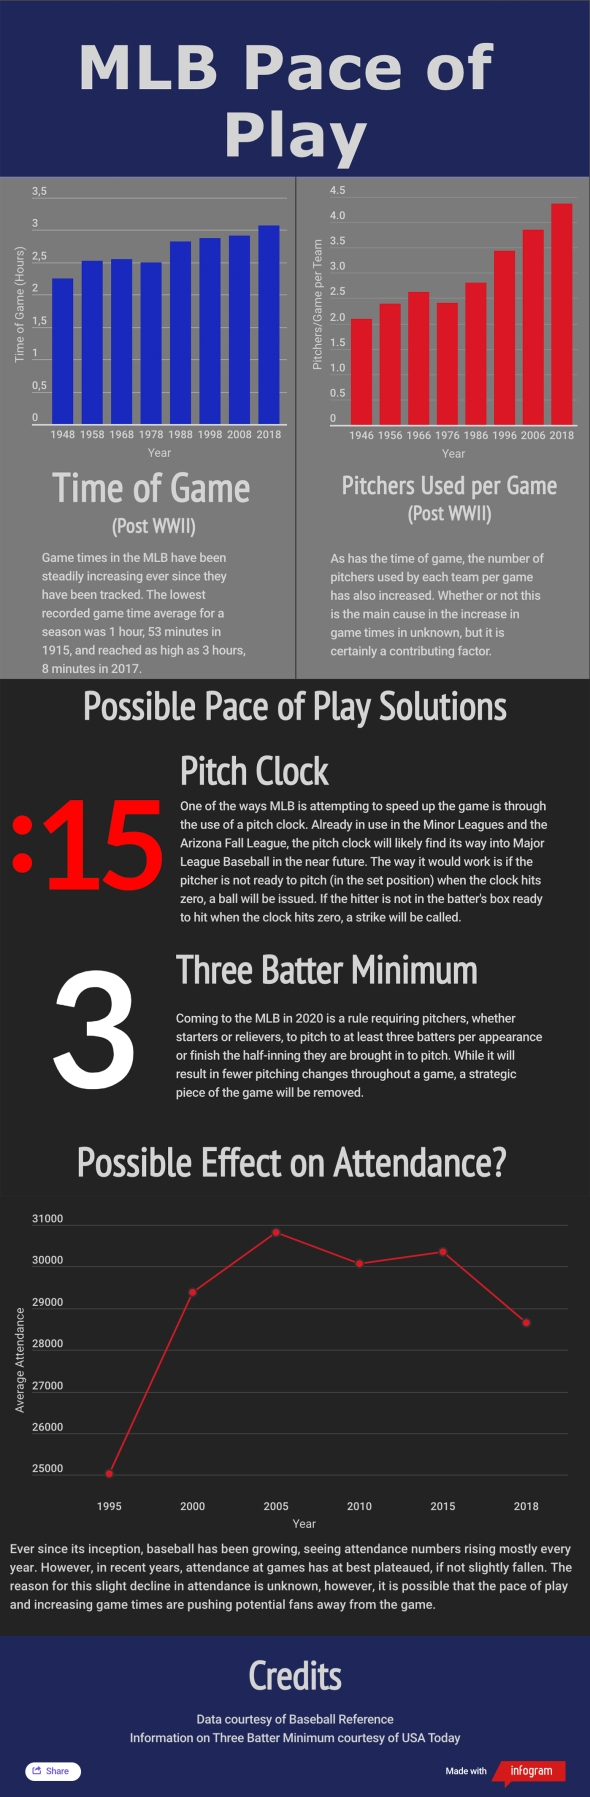 mlb-pace-of-play-infographic.jpg